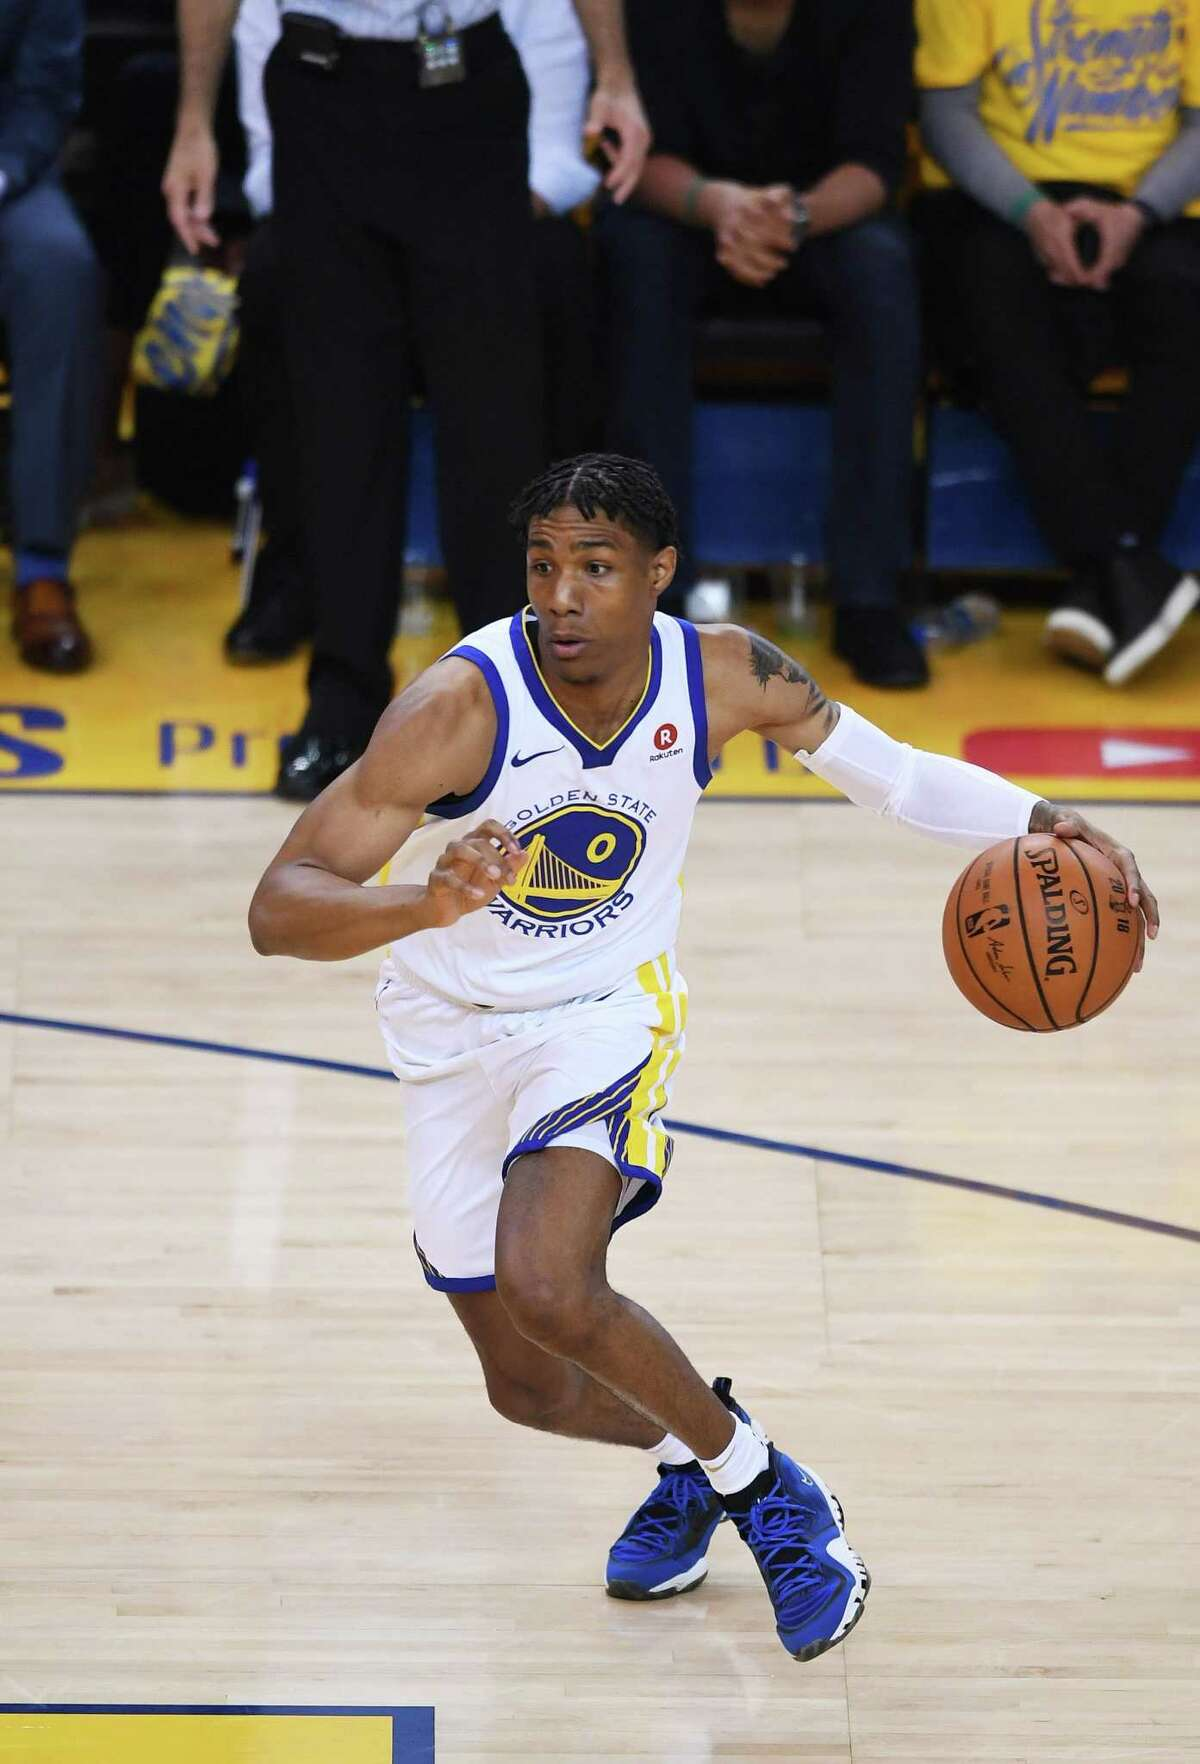 OAKLAND, CA - MAY 31: Patrick McCaw #0 of the Golden State Warriors shoots against the Cleveland Cavaliers in Game 1 of the 2018 NBA Finals at ORACLE Arena on May 31, 2018 in Oakland, California. NOTE TO USER: User expressly acknowledges and agrees that, by downloading and or using this photograph, User is consenting to the terms and conditions of the Getty Images License Agreement. (Photo by Thearon W. Henderson/Getty Images)